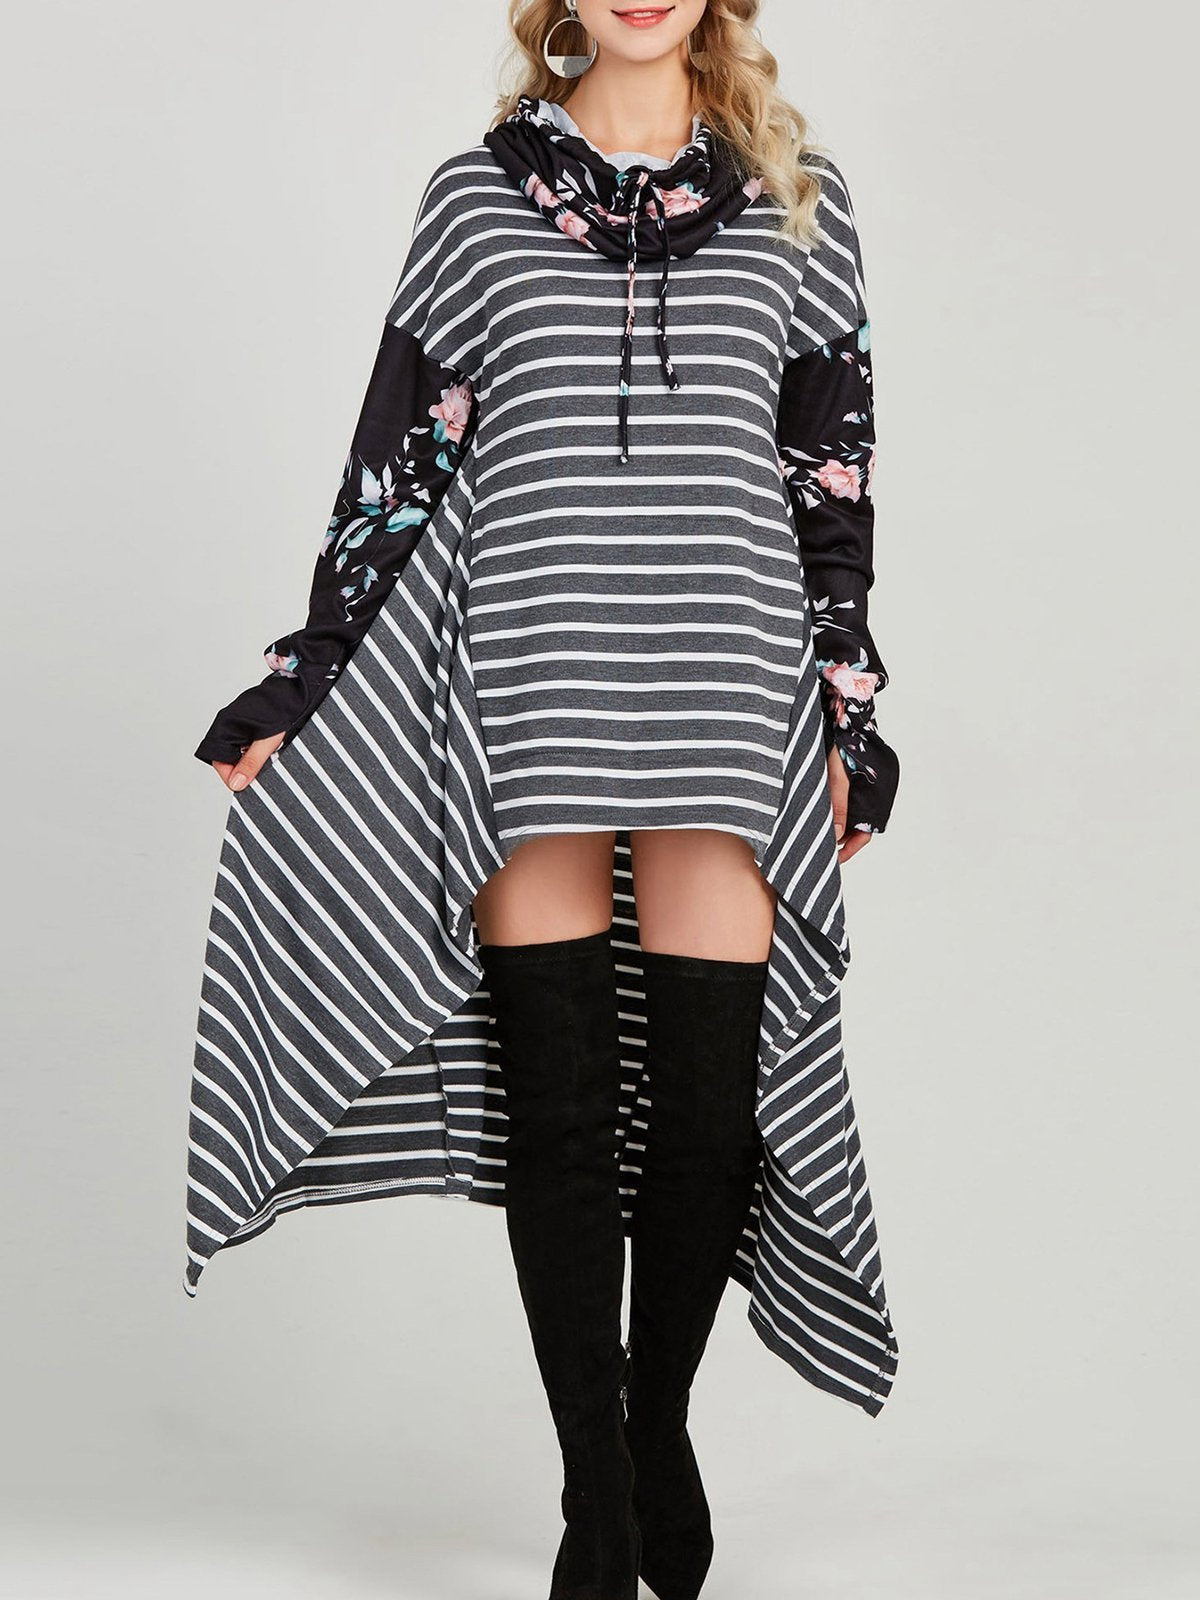 Floral Stripes Tunic Sweatshirts With Hoodie